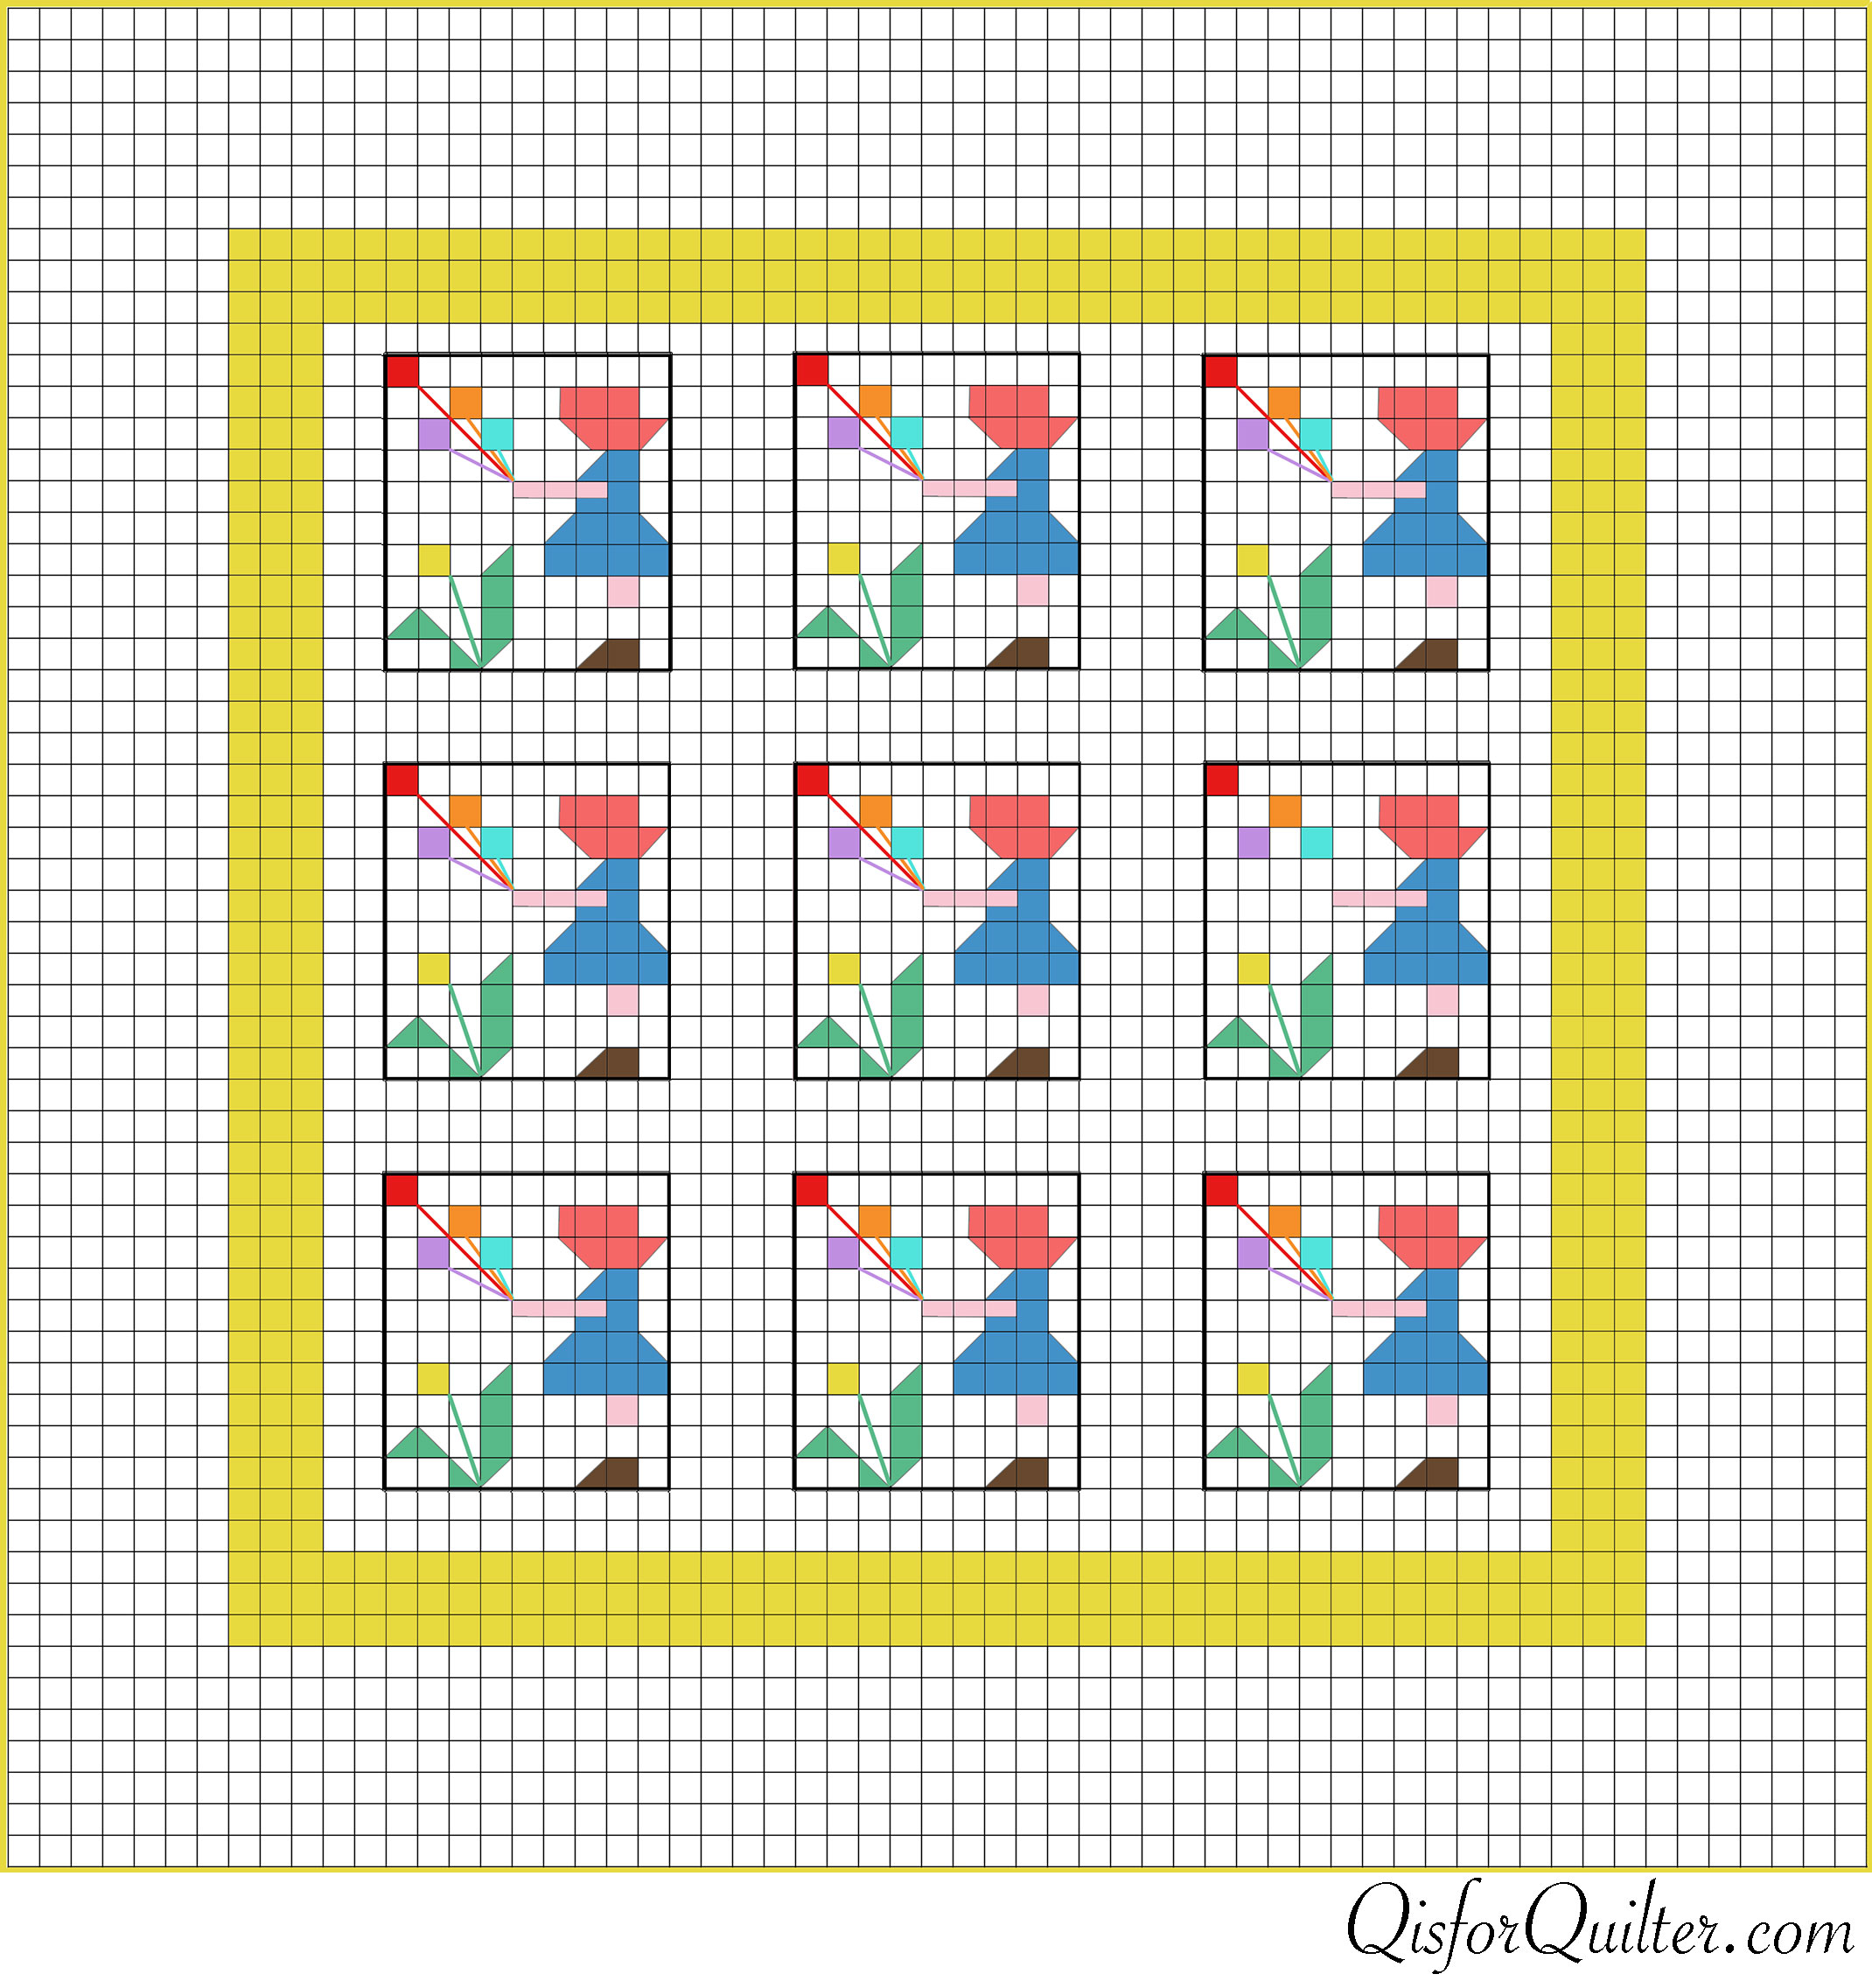 Vintage Sunbonnet Sue Pieced Quilt Pattern Q is for Quilter